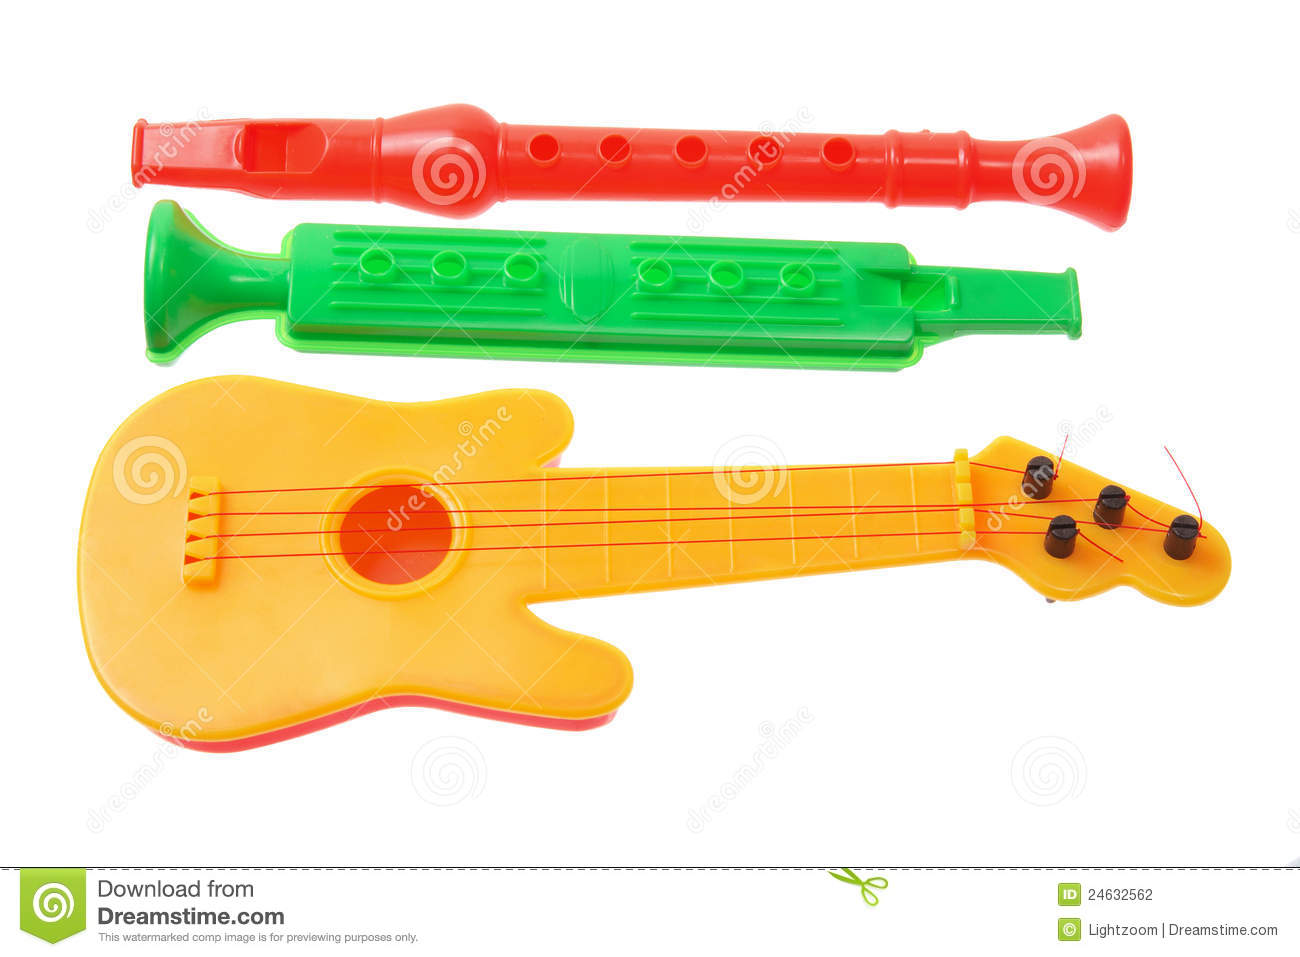 Plastic Toy Musical Instruments : Toy musical instruments stock photography image